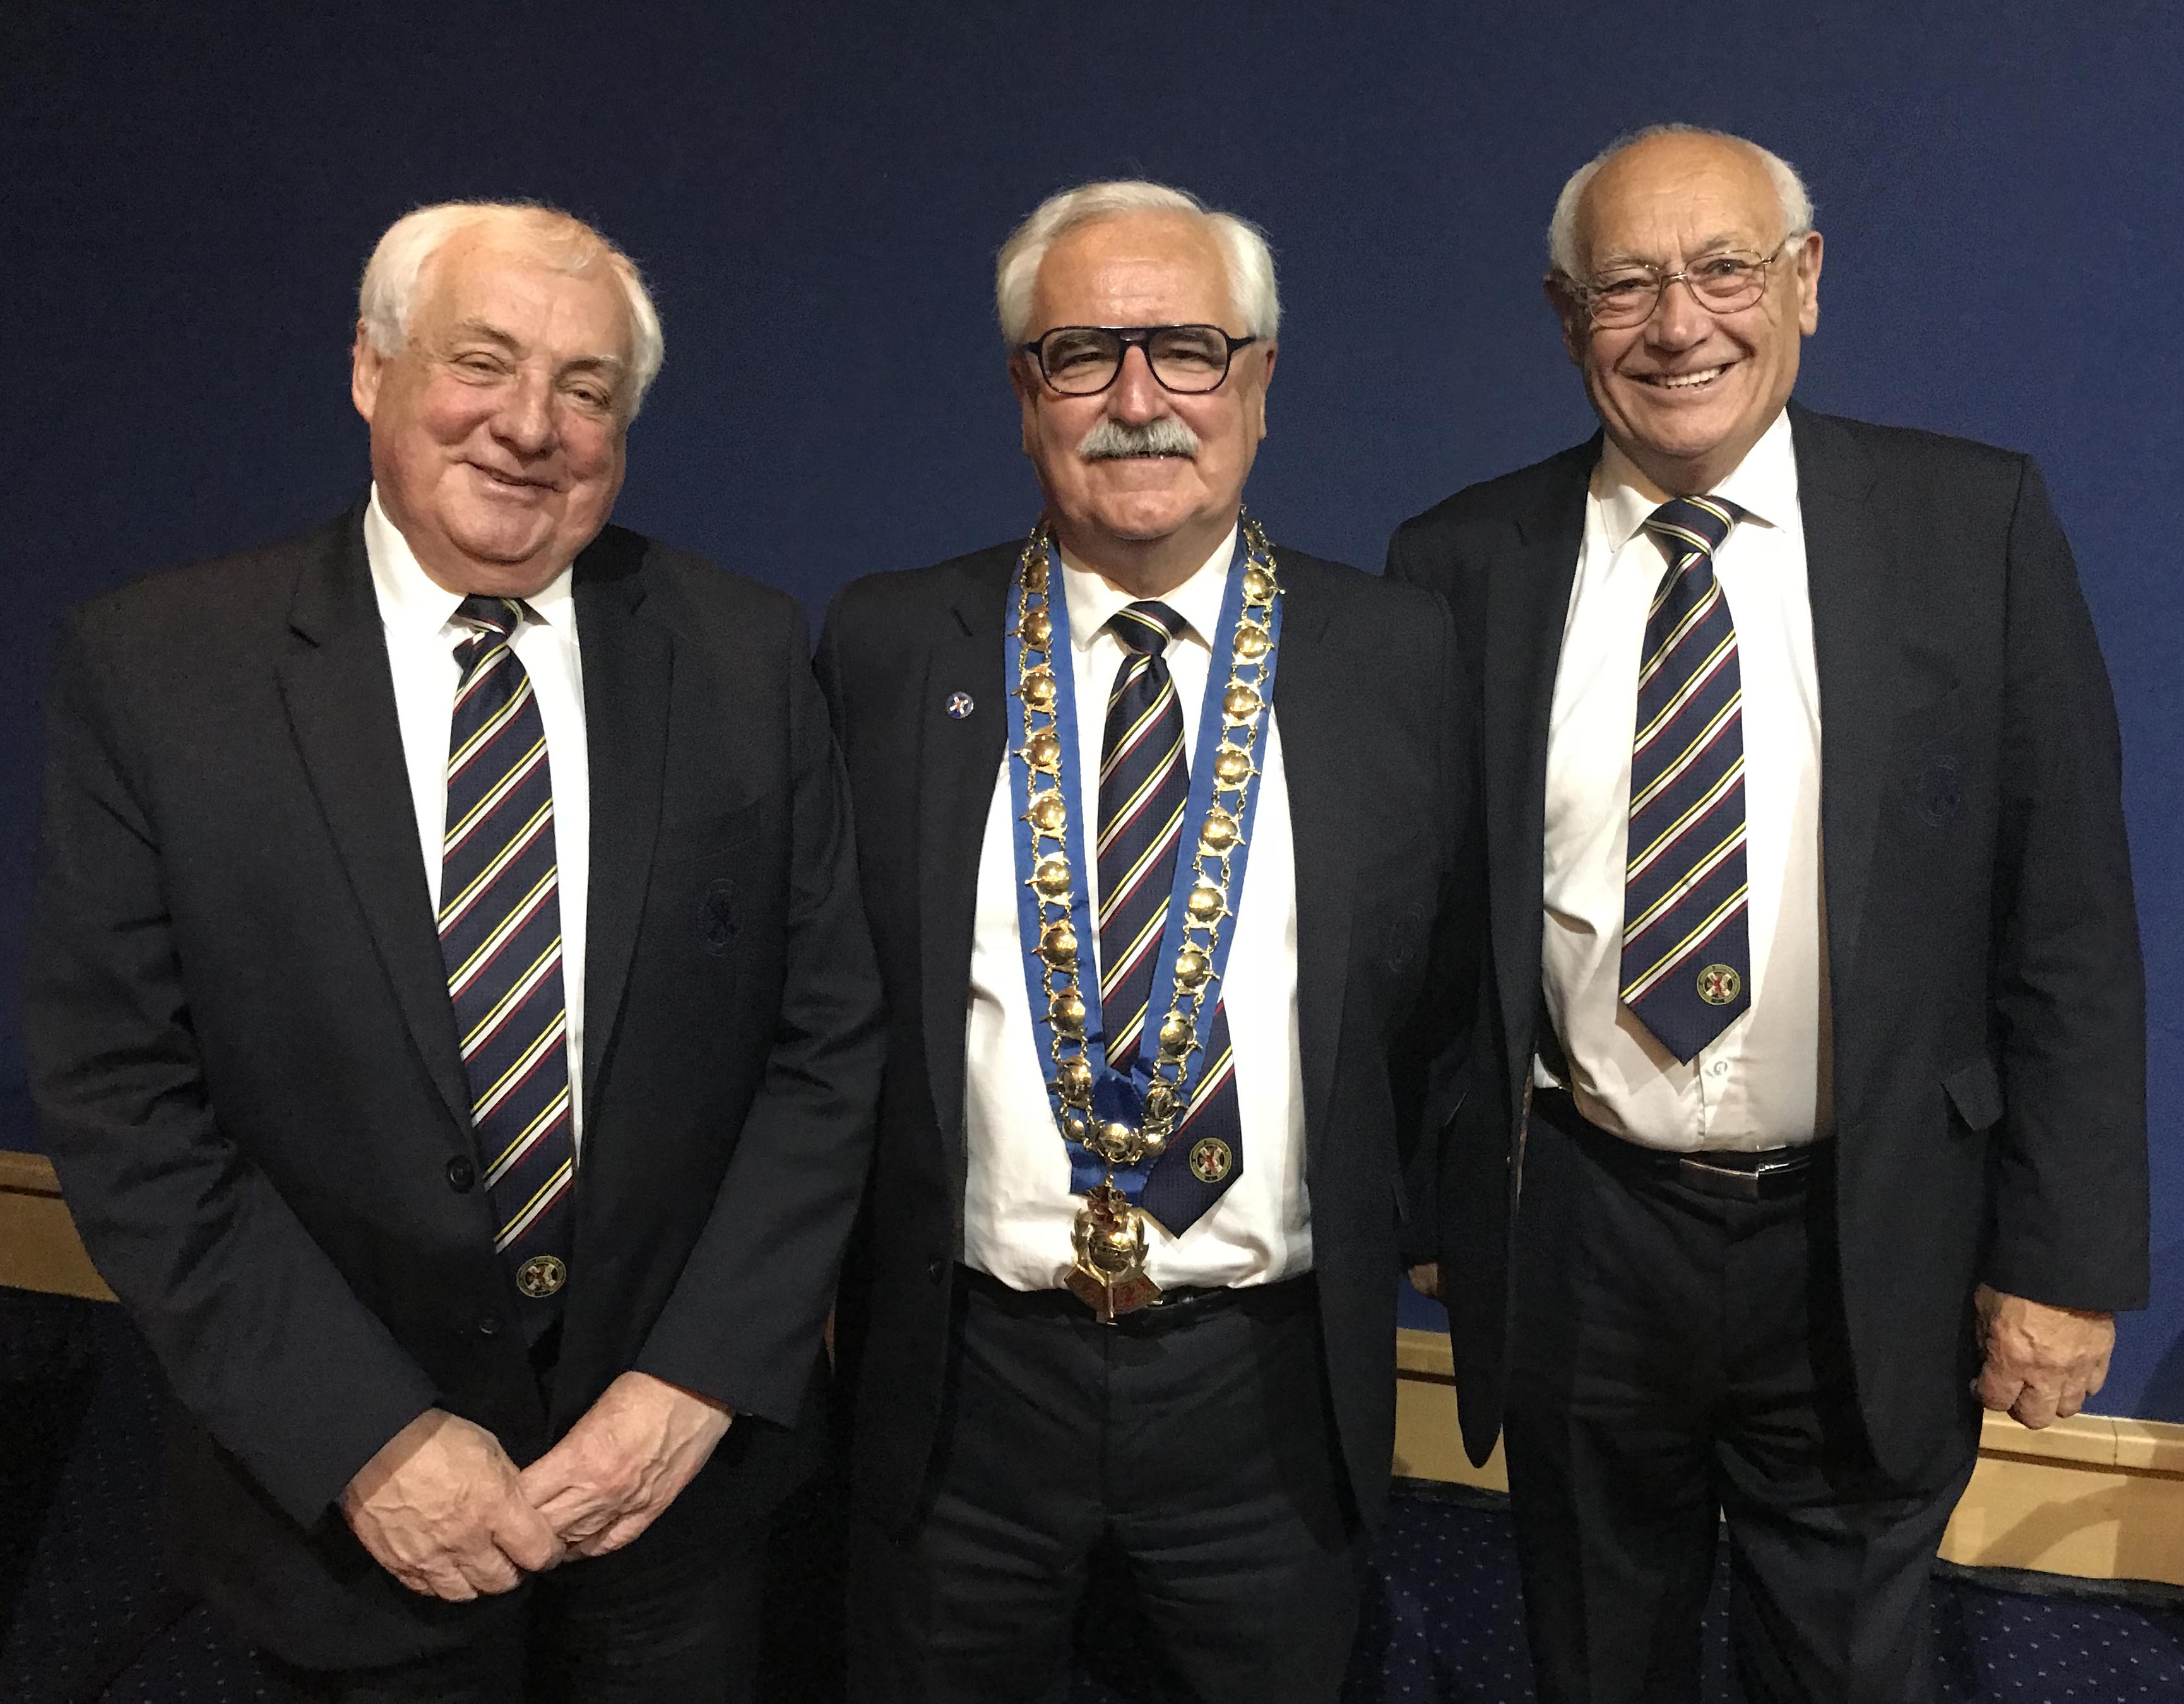 <a href='/newsdetail/ID/583'>Scottish Amateur FA President and Vice President Elected at AGM 2018</a>